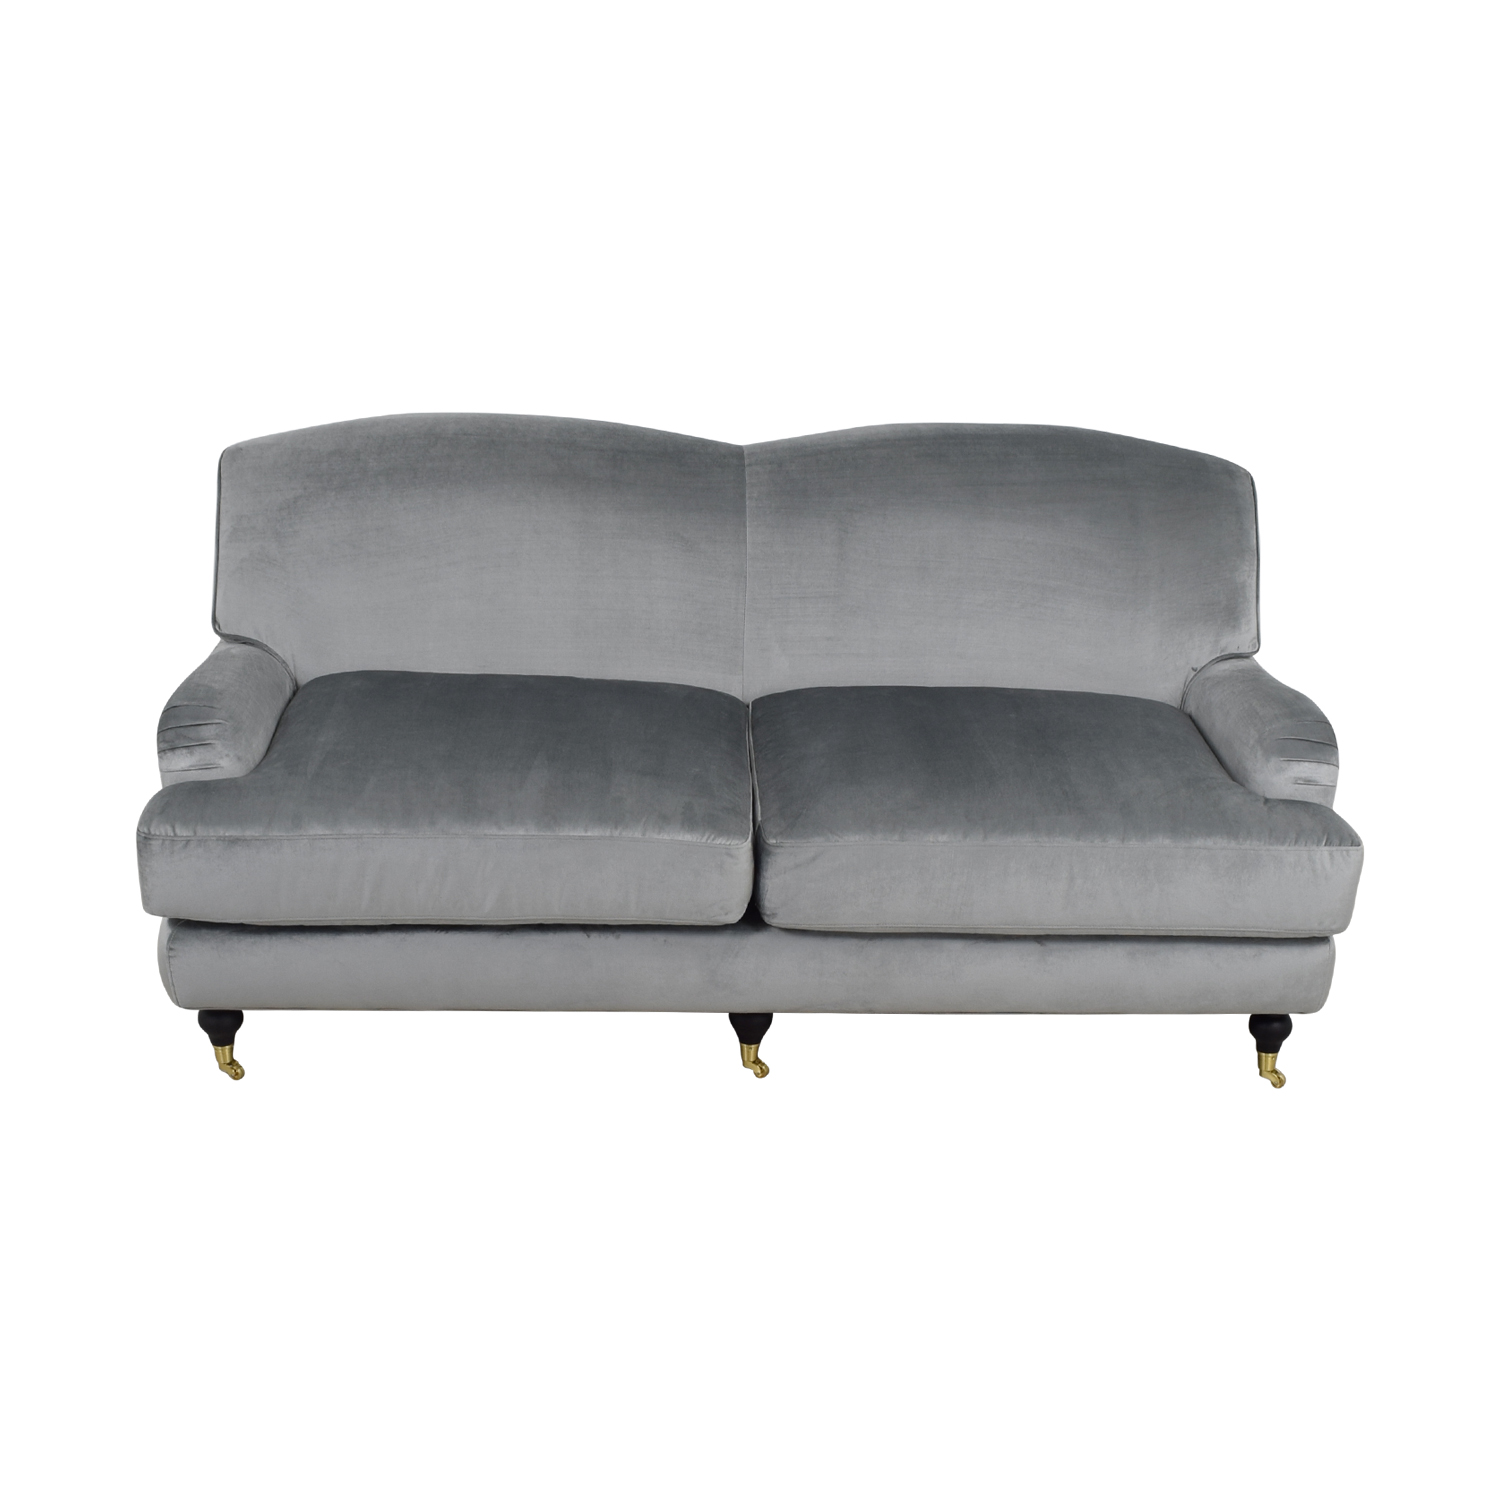 shop Interior Define Rose Metallic Silver Sofa Interior Define